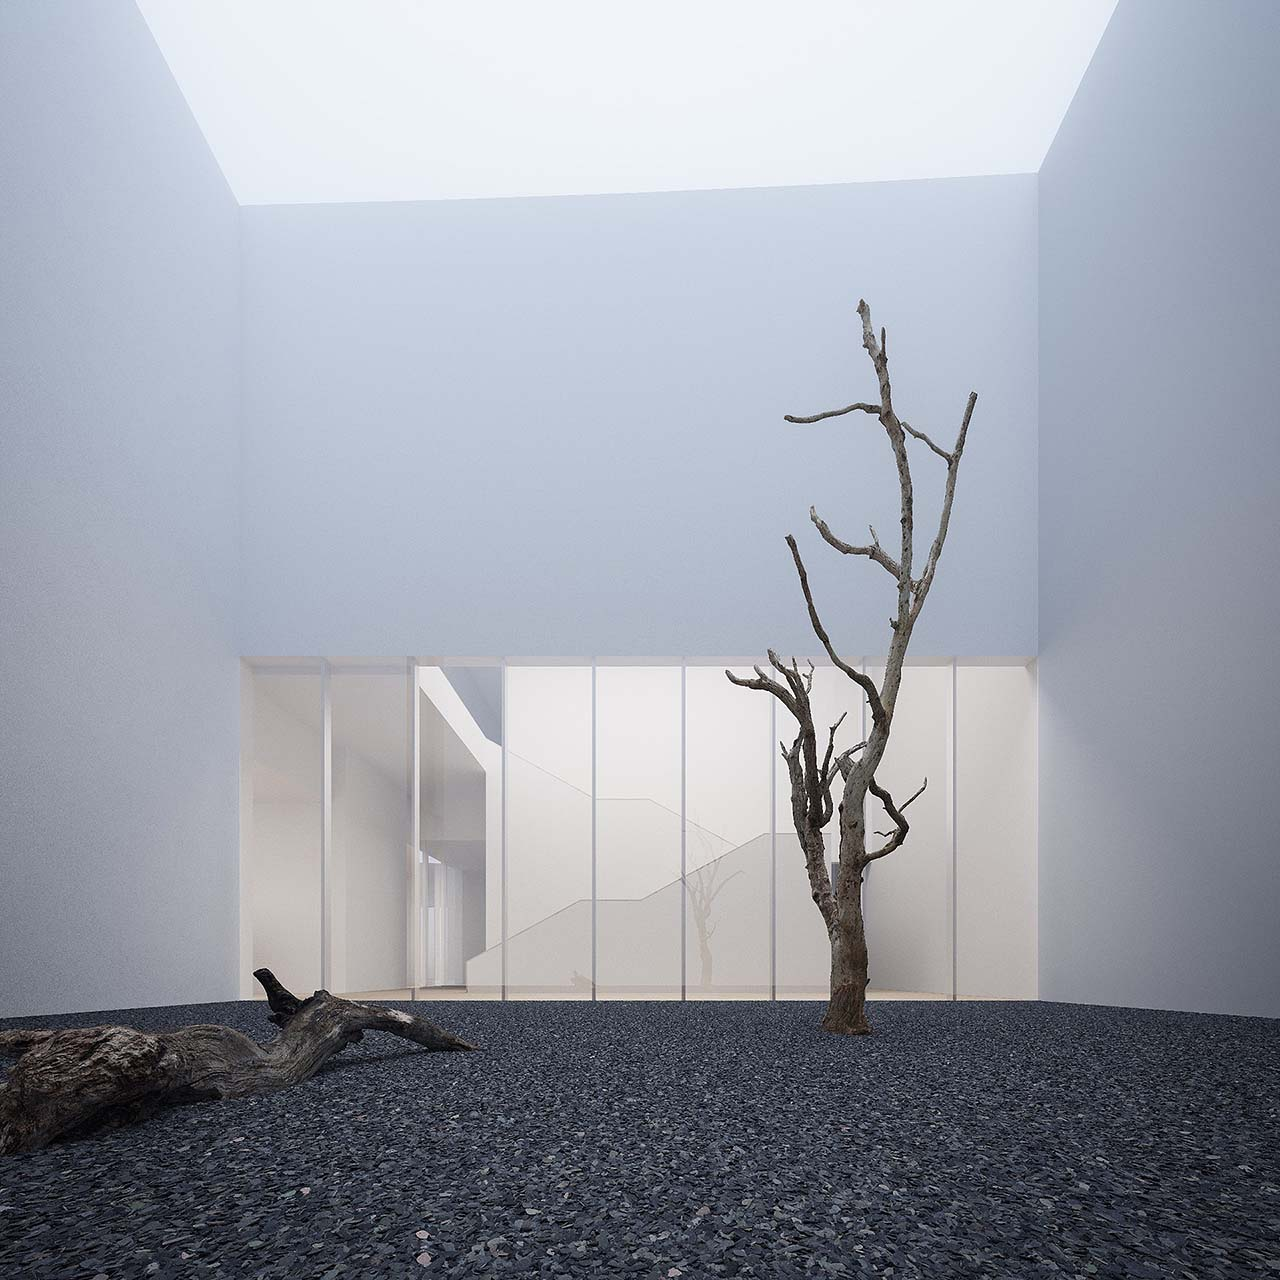 Photoreal 3d render: minimalist museum courtyard surrounded by white concrete walls, fossil tree on black gravel